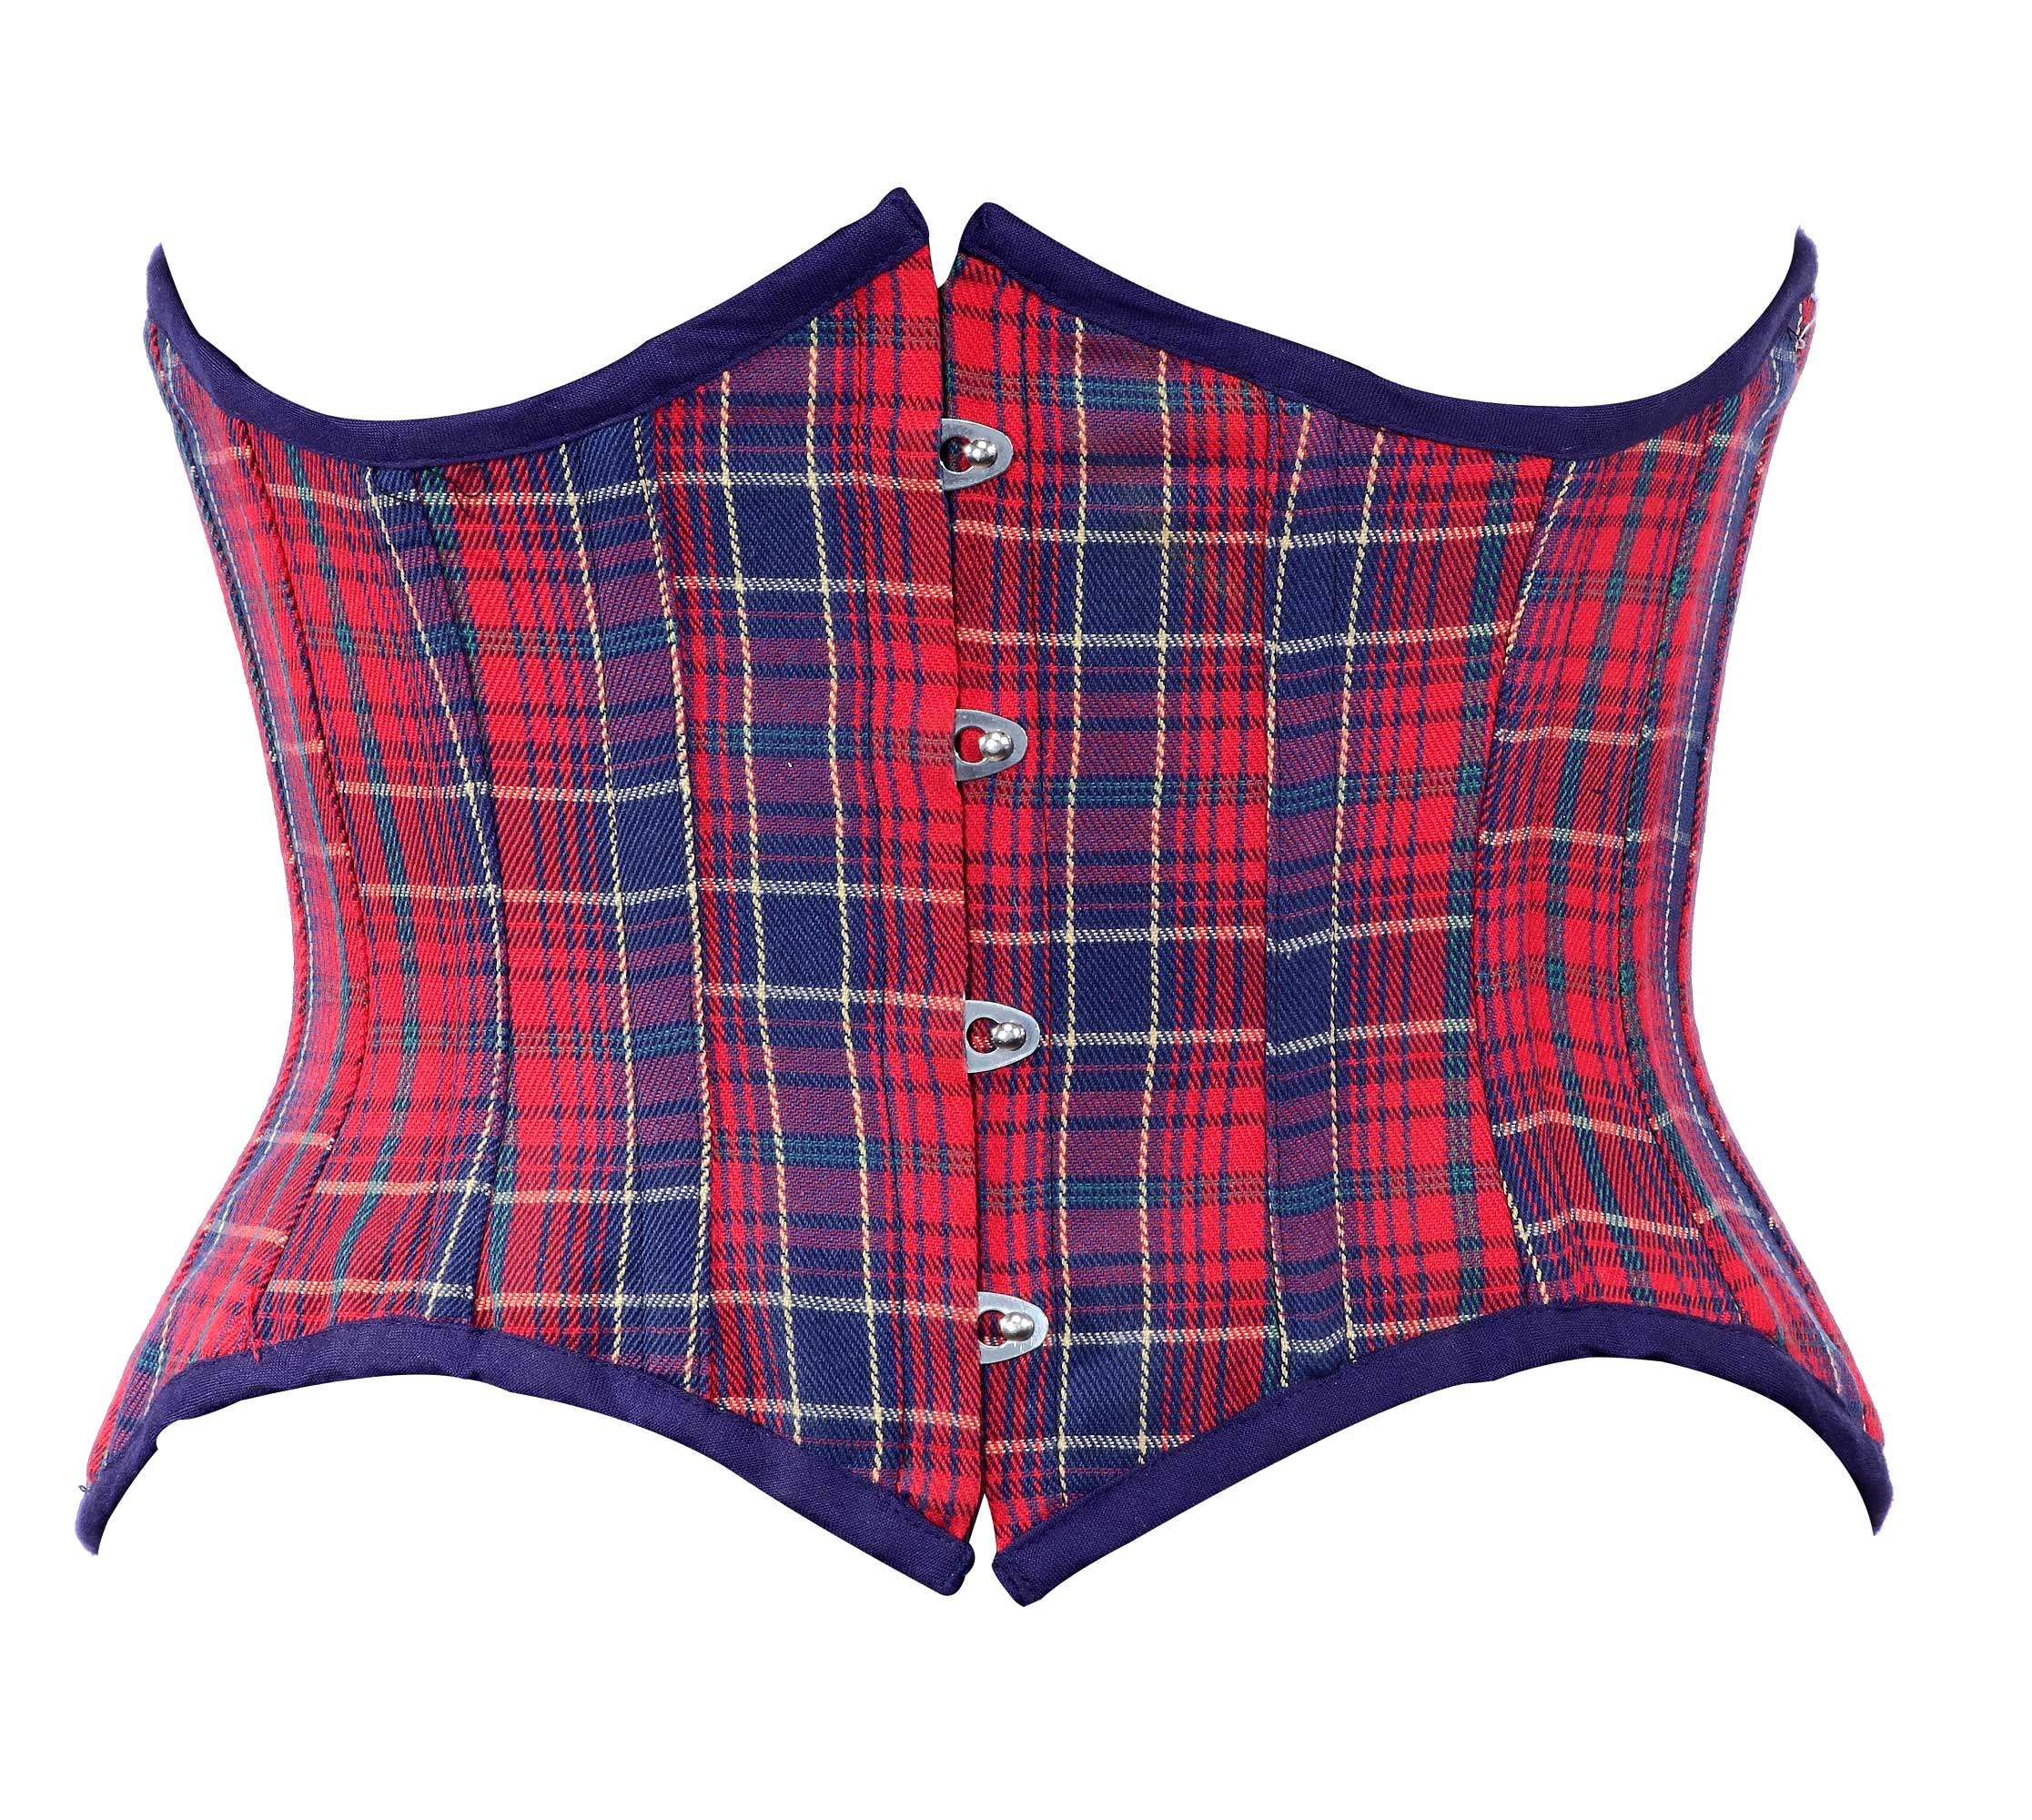 red_and_blue_check_fabric_steel_boning_underbust_corset_waist_cincher_bustier_bustiers_and_corsets_5.jpg